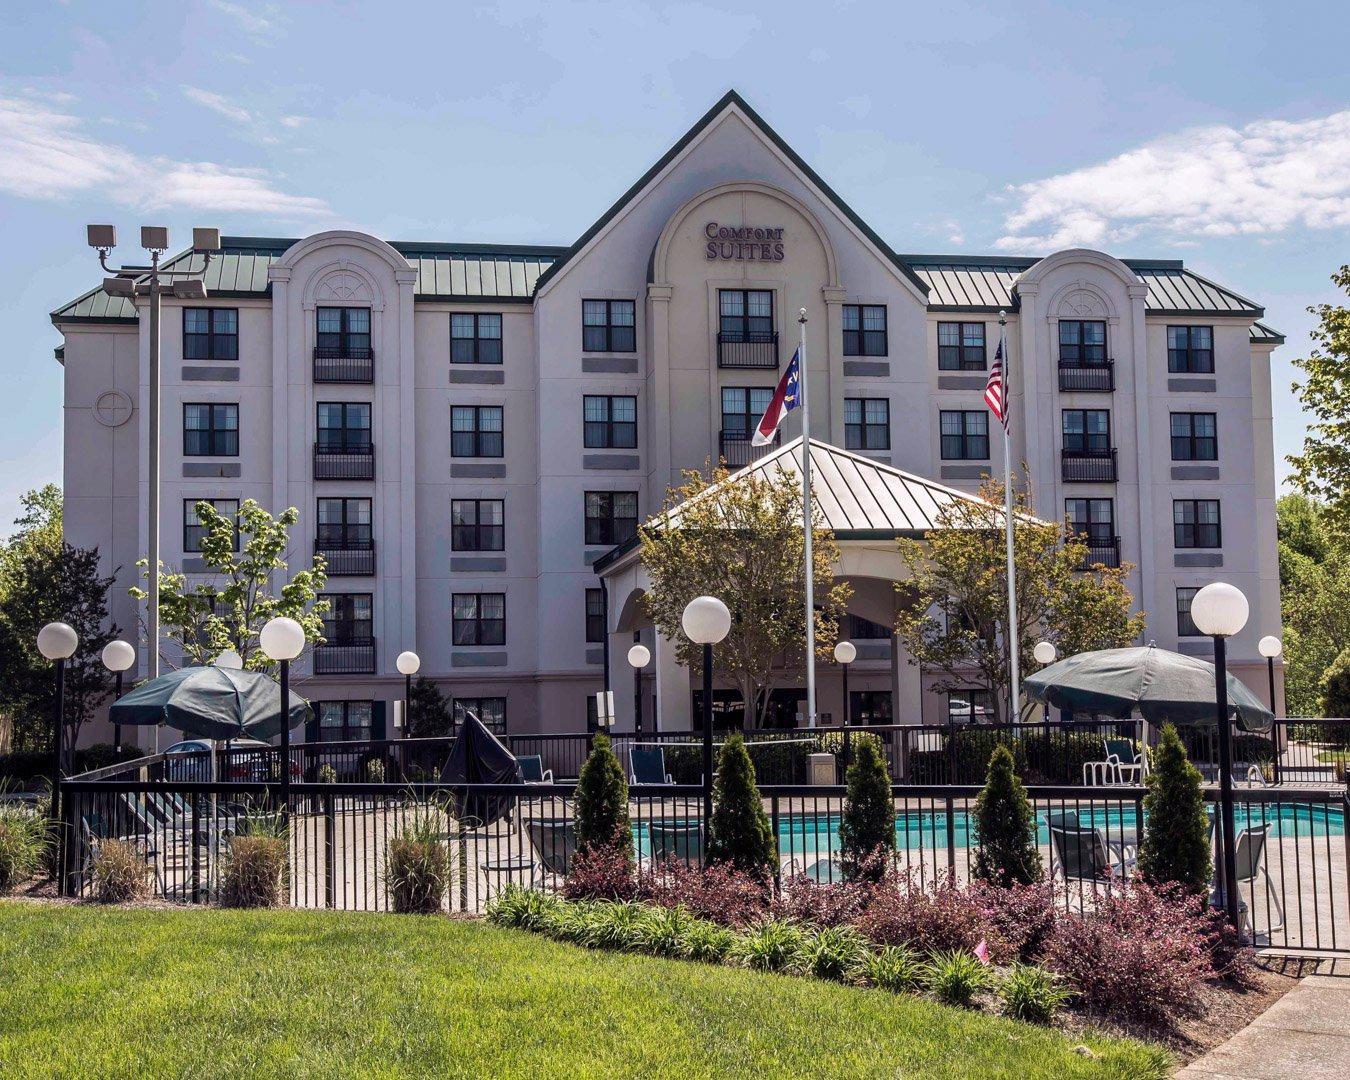 Comfort suites hanes mall in winston salem nc 336 774 for Comfort house